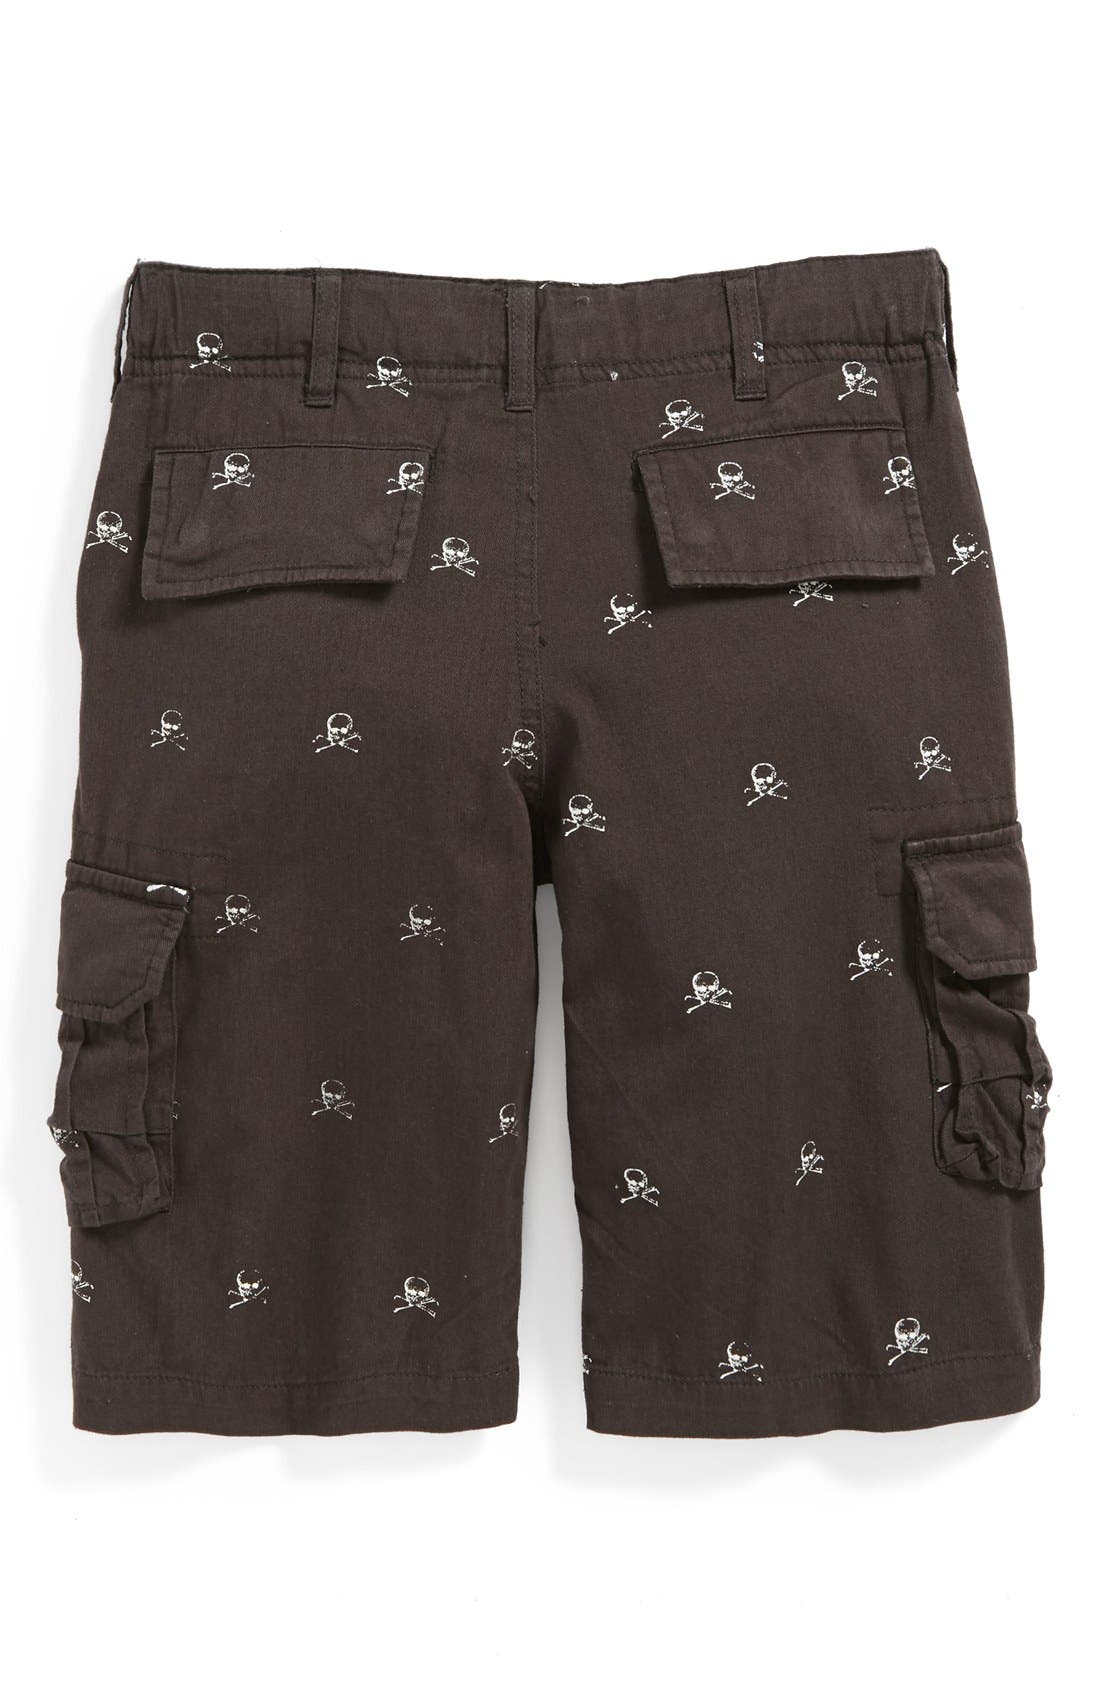 Alternate Image 2  - Peek 'Skull' Cargo Shorts (Toddler Boys, Little Boys & Big Boys)